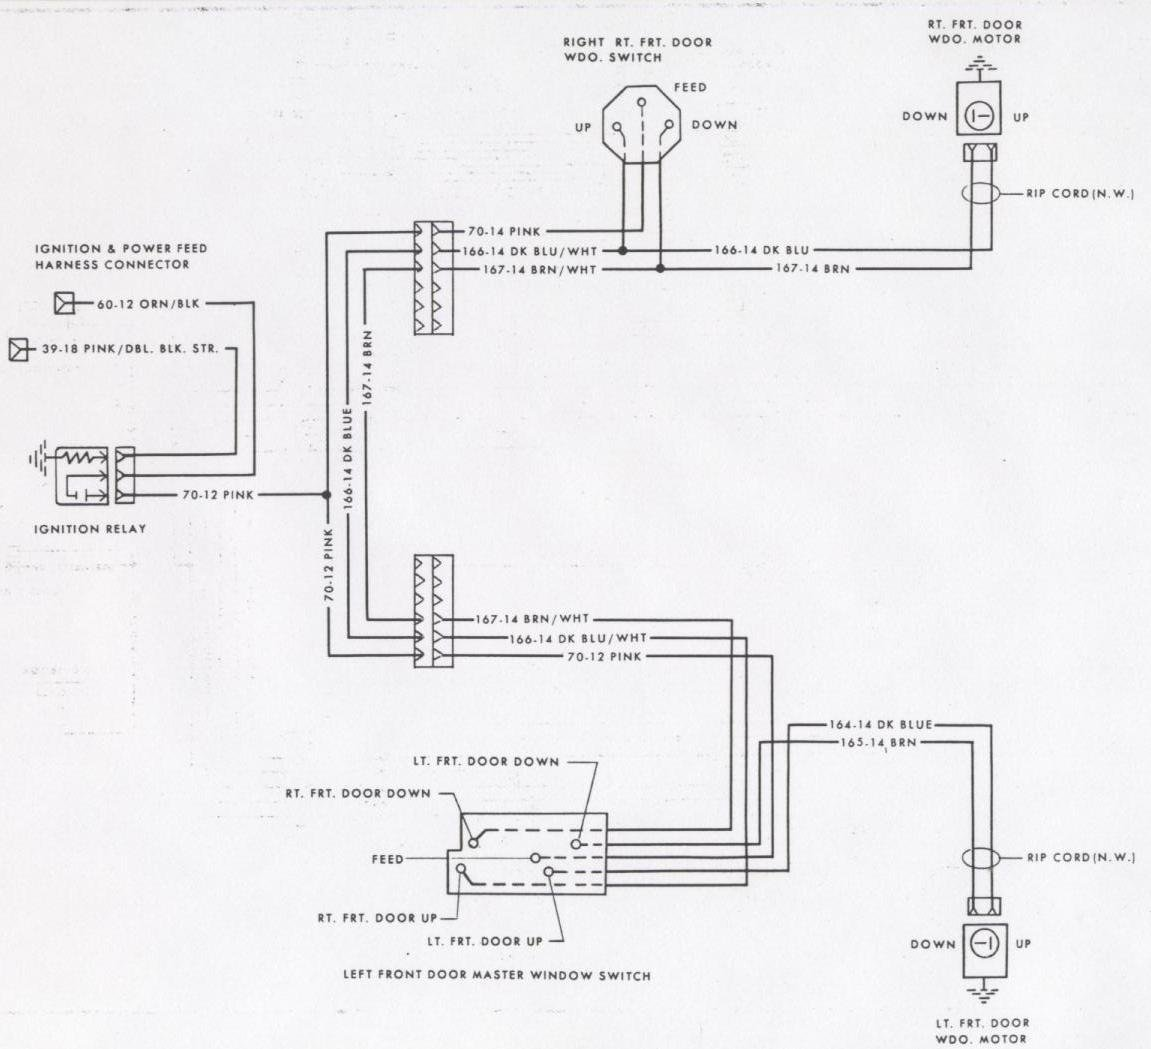 1980 camaro wiper switch wiring diagram